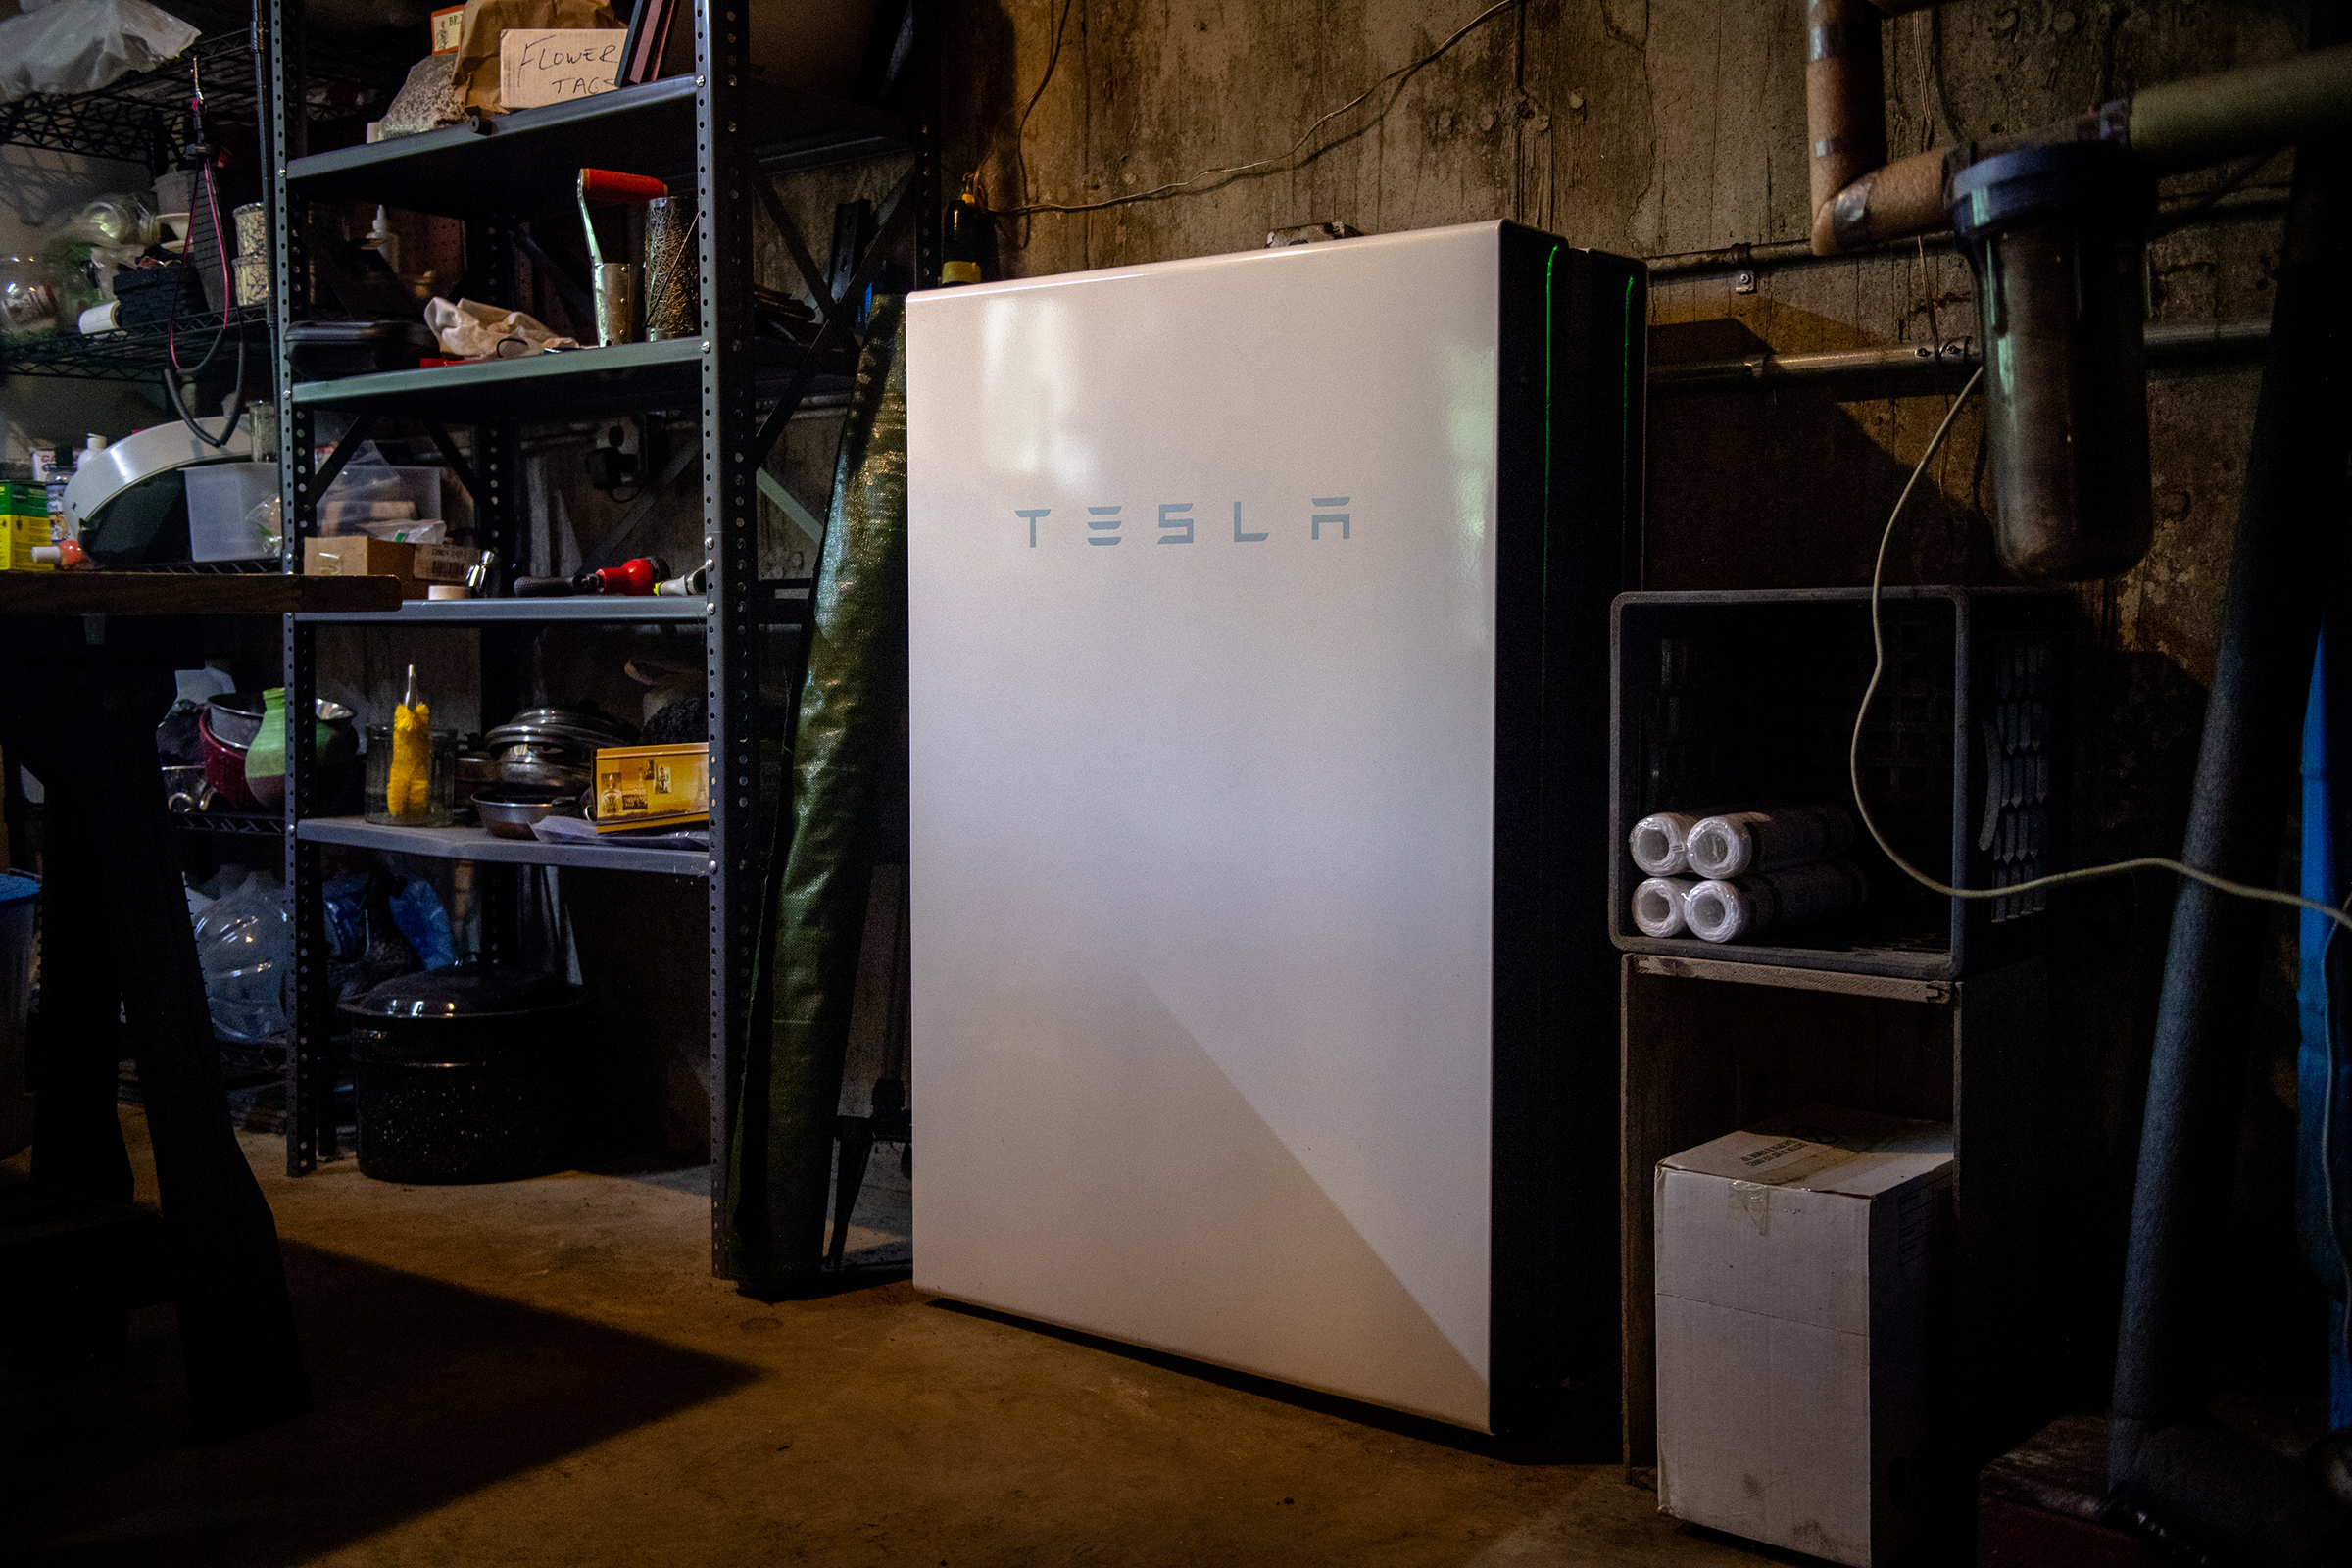 A Tesla Powerwall battery backup system in a home in Guilford, Vt. When the grid-modernization program began in 2017, it was the first such utility-sponsored initiative in the U.S. Nearly 1,000 Vermonters had signed up within a year. In late 2020, state regulators approved it as a permanent program.